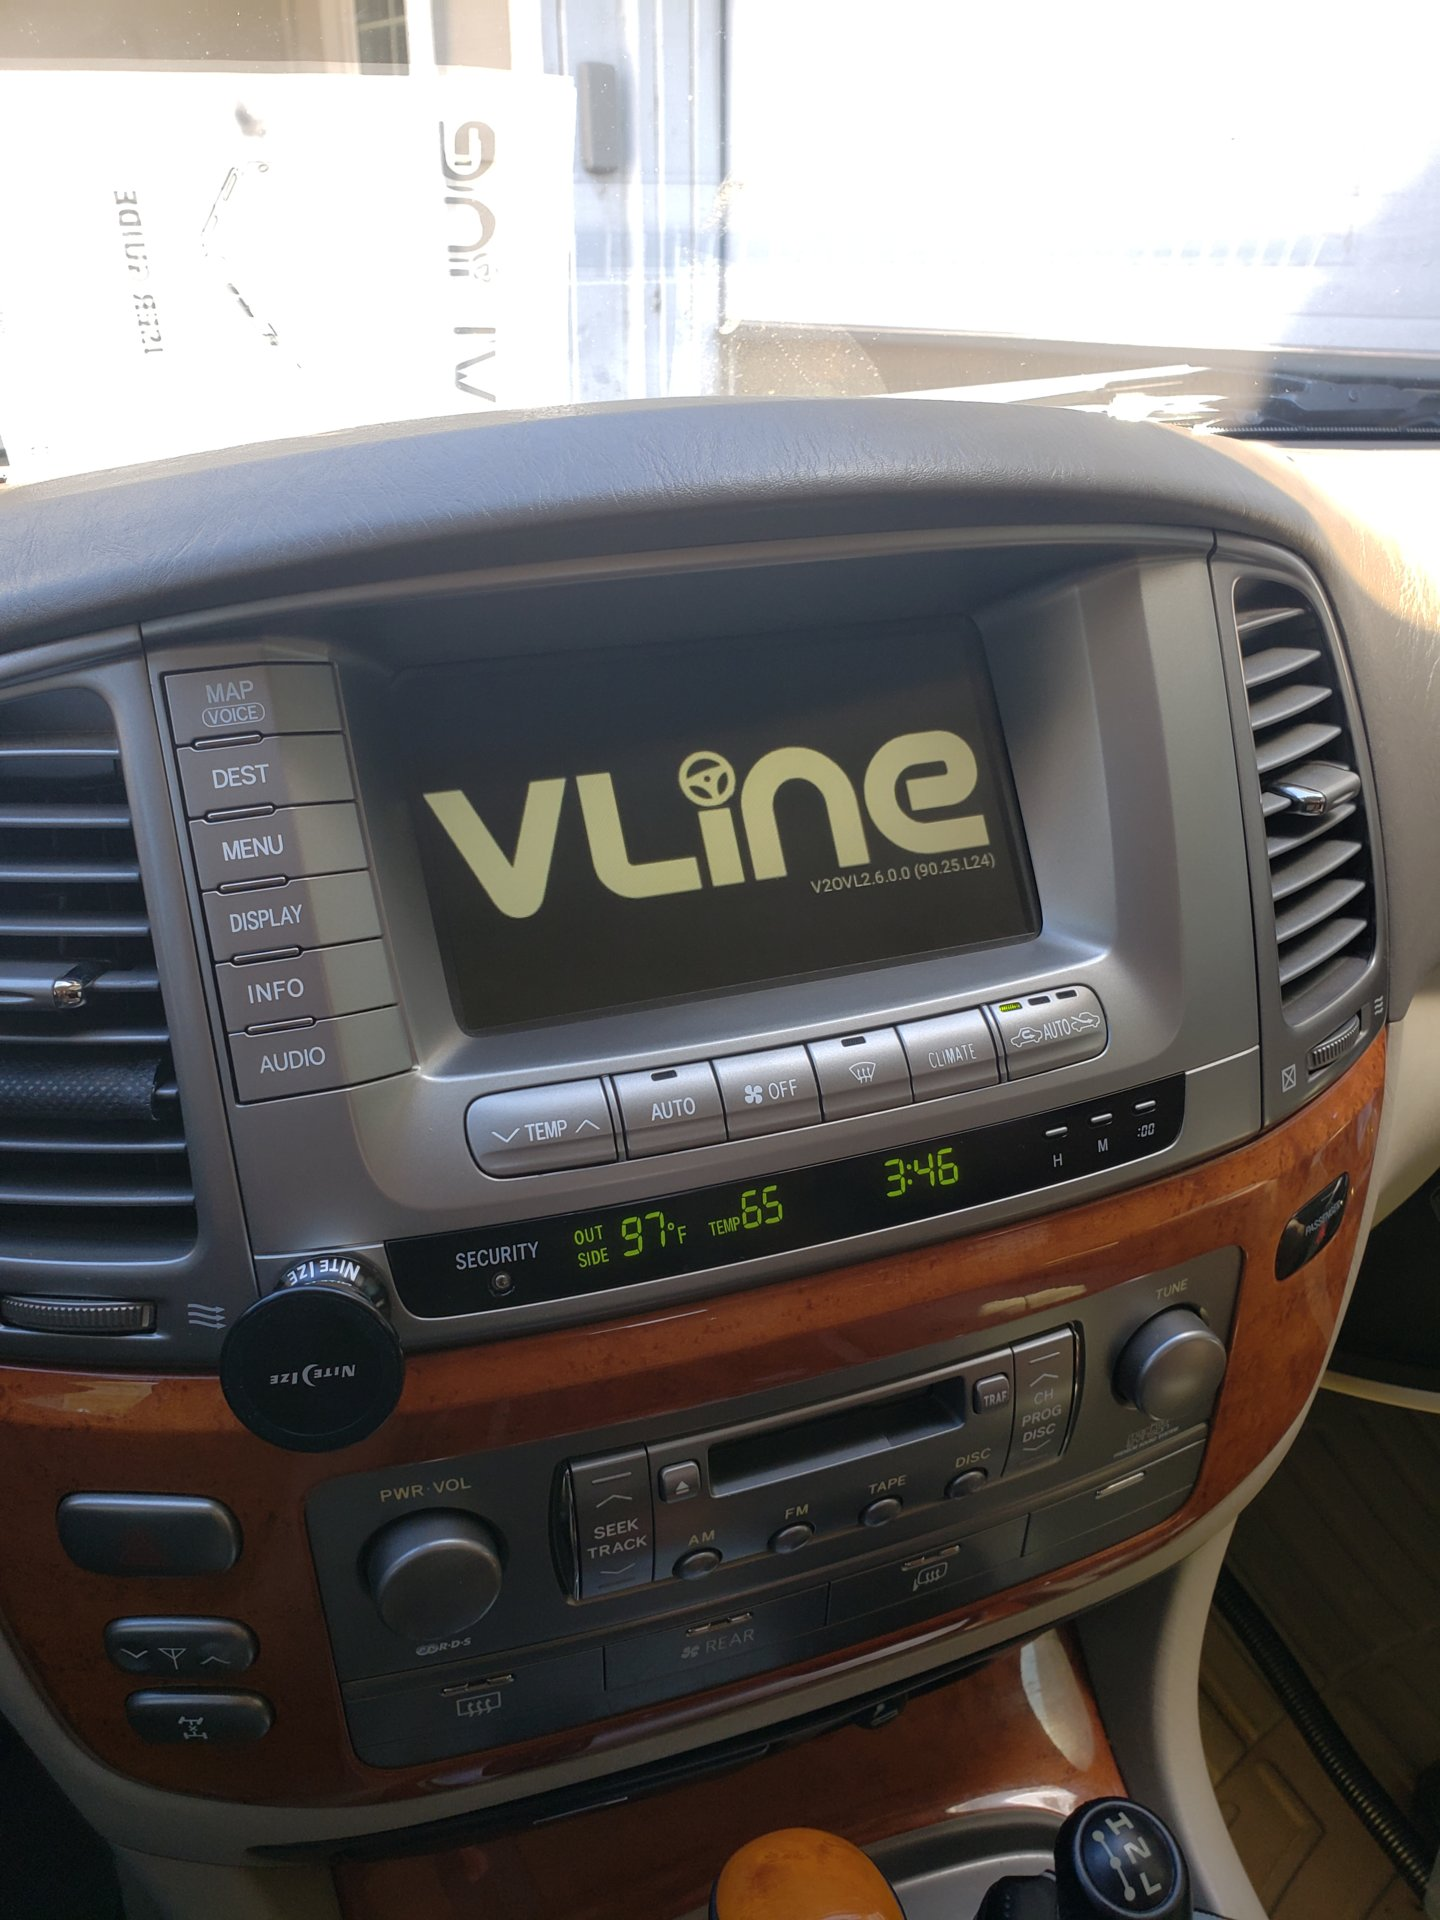 Update on GROM vline infotainment system for 2003 LX470